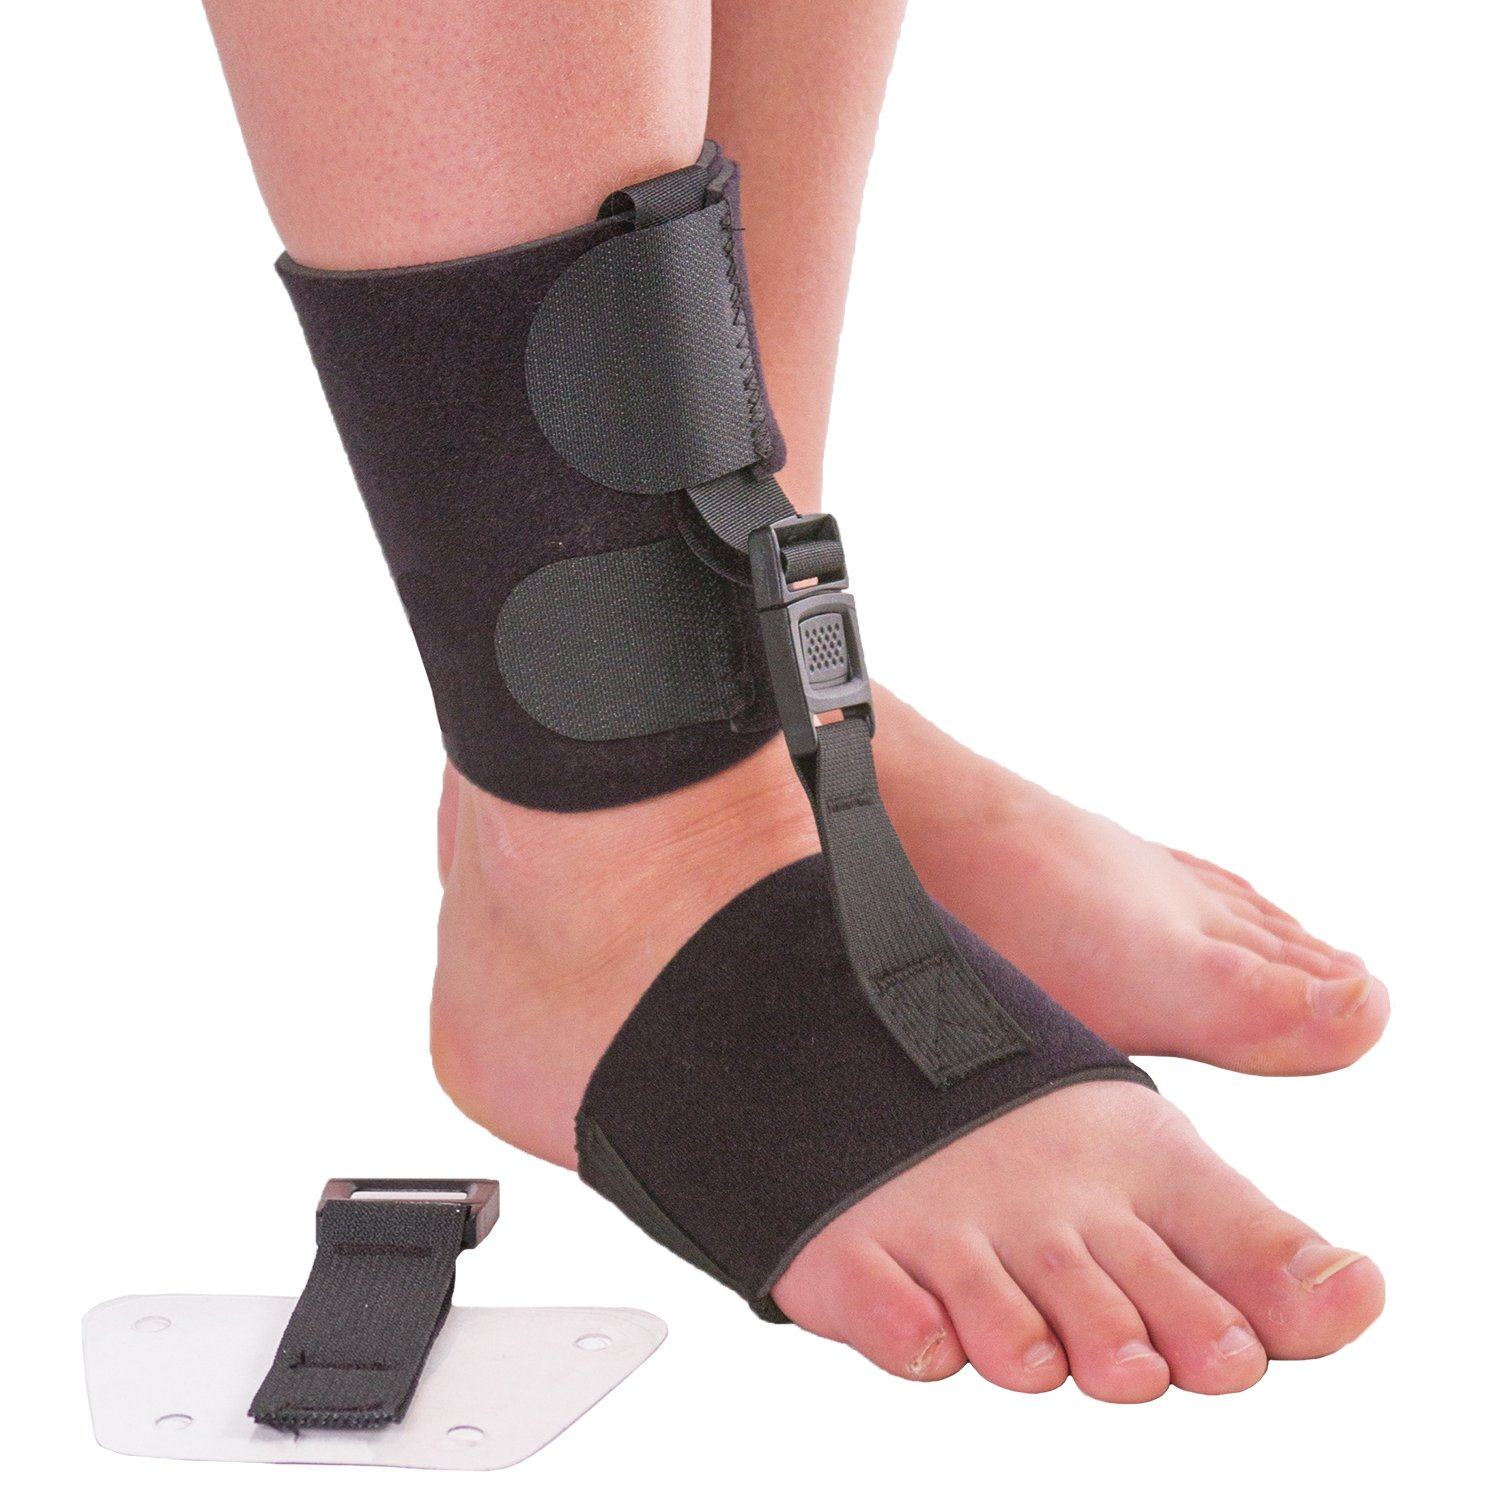 Soft AFO Foot Drop Brace | Ankle Foot Orthosis with Dorsiflexion Assist Strap Keeps Foot Up for Improved Walking Gait, Prevents Cramps - Wear Barefoot or Inside Shoe (L/XL)